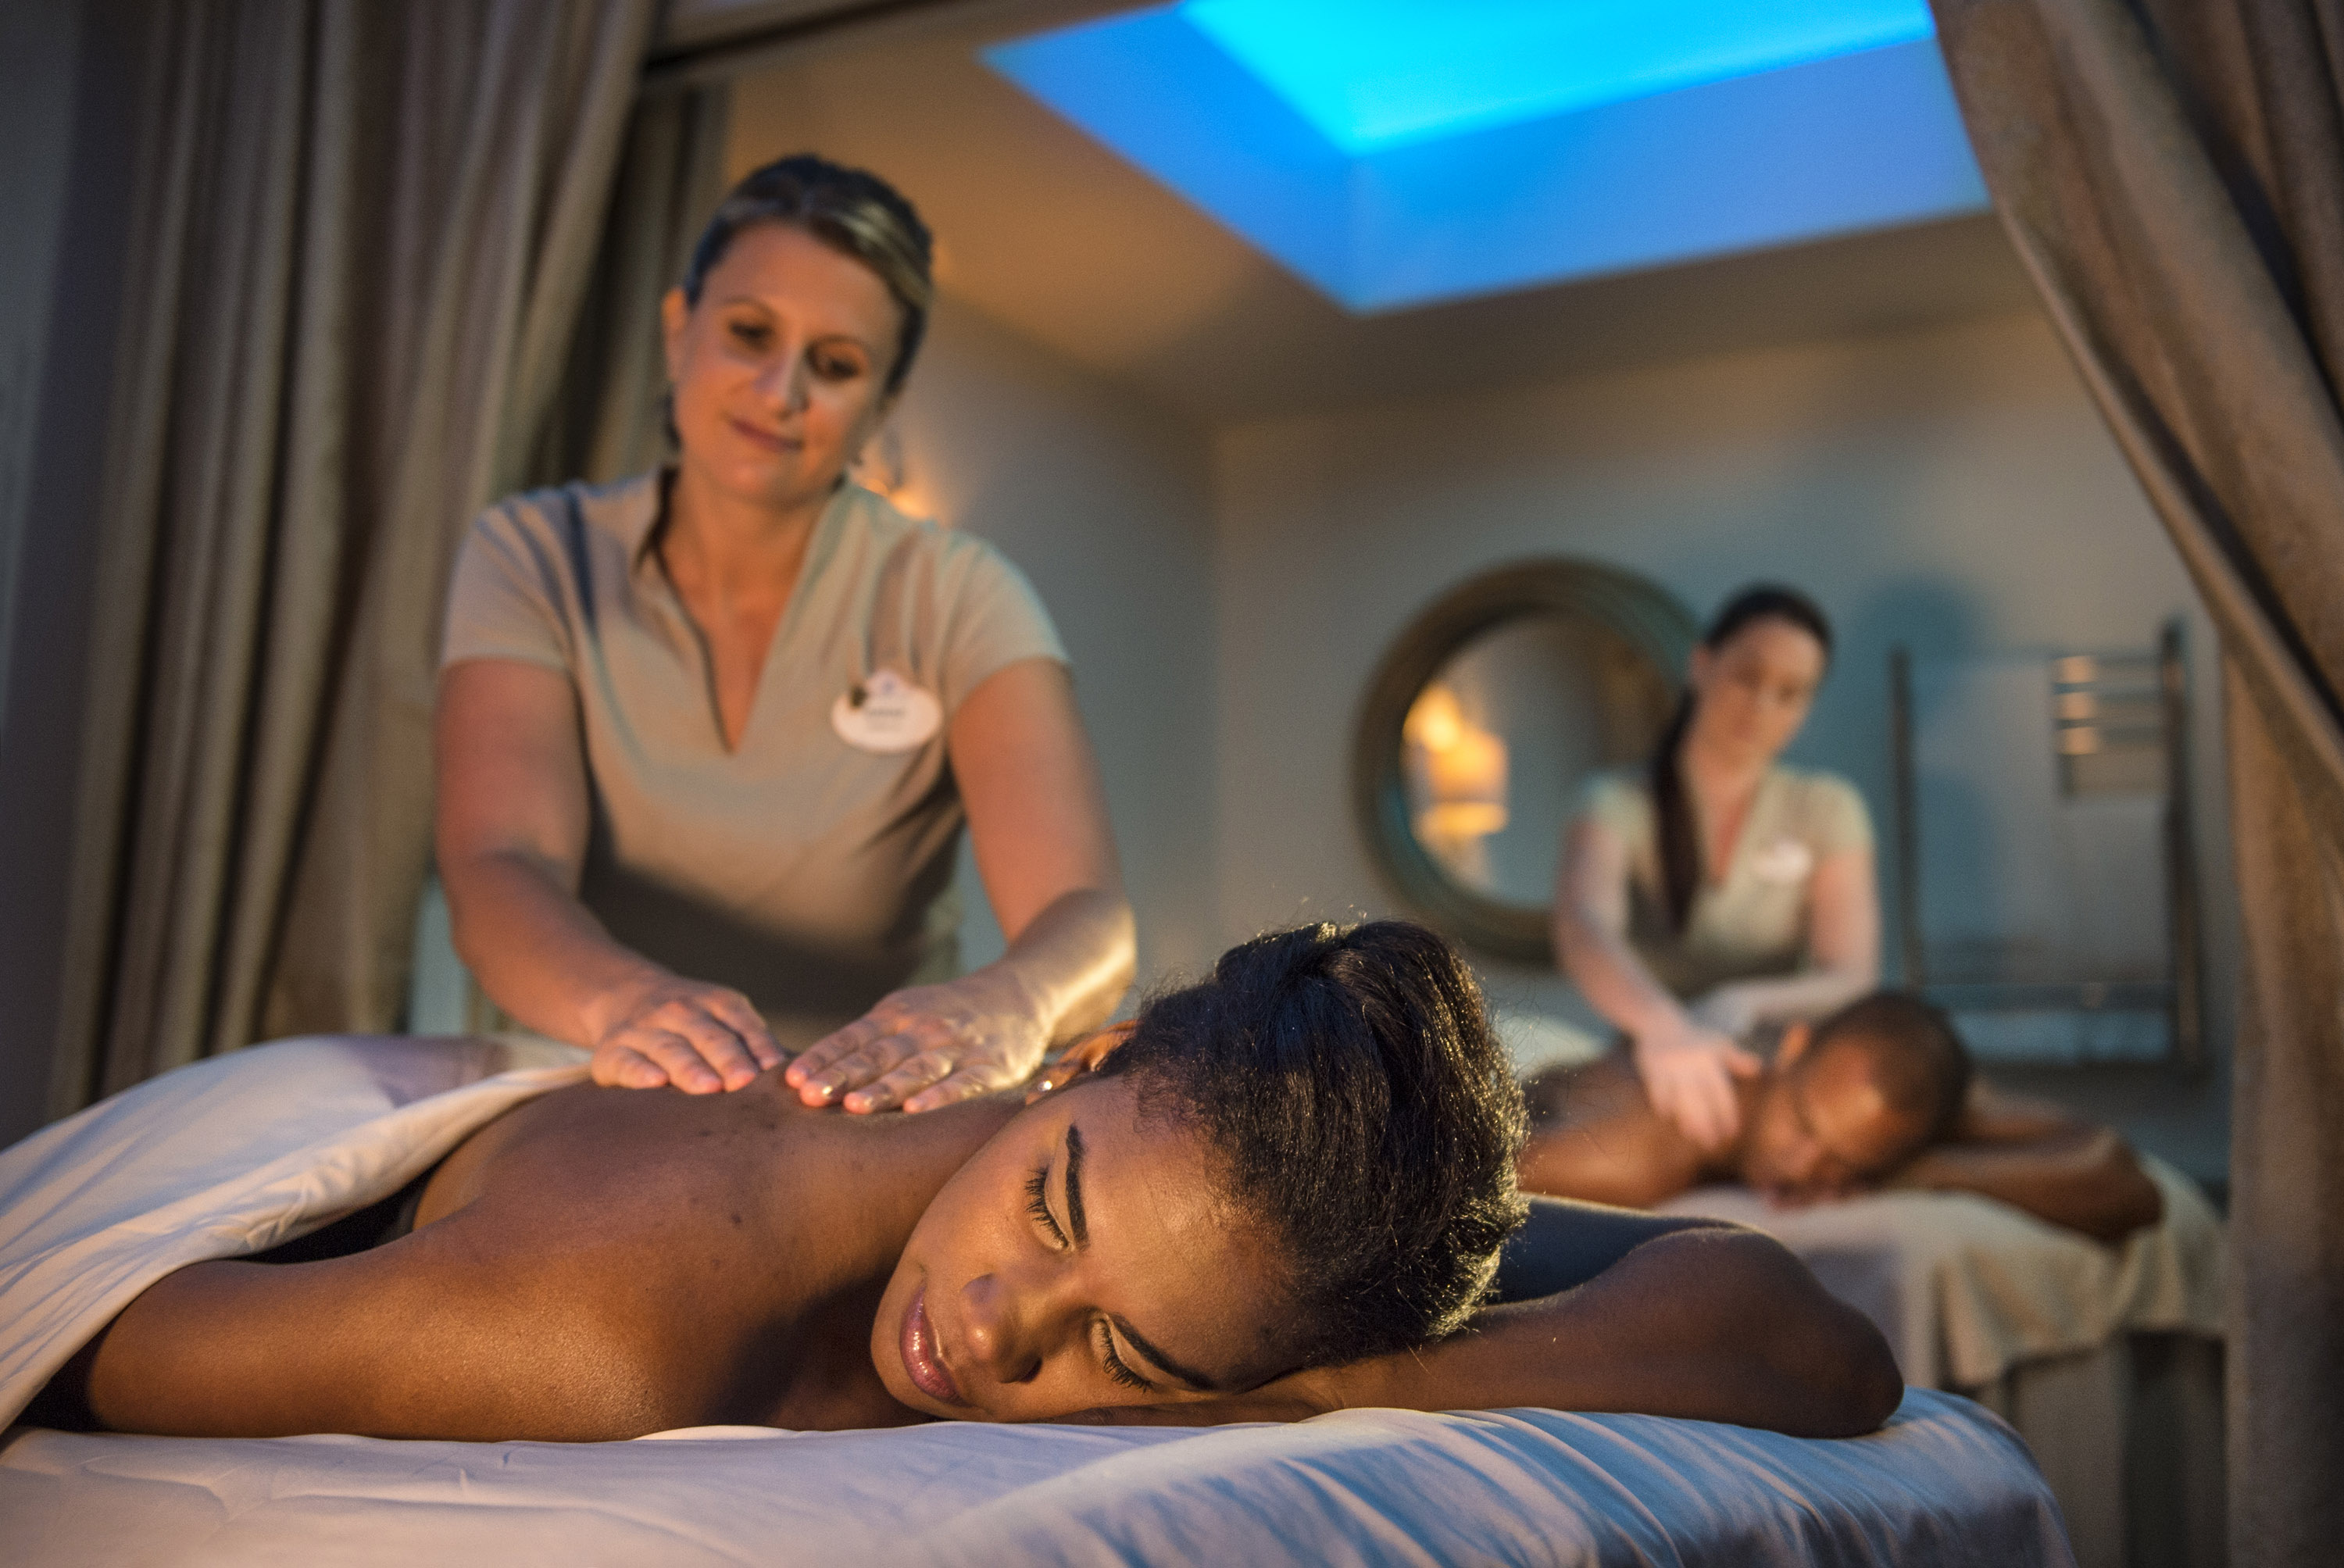 Relax in Luxury at a Disney World Spa